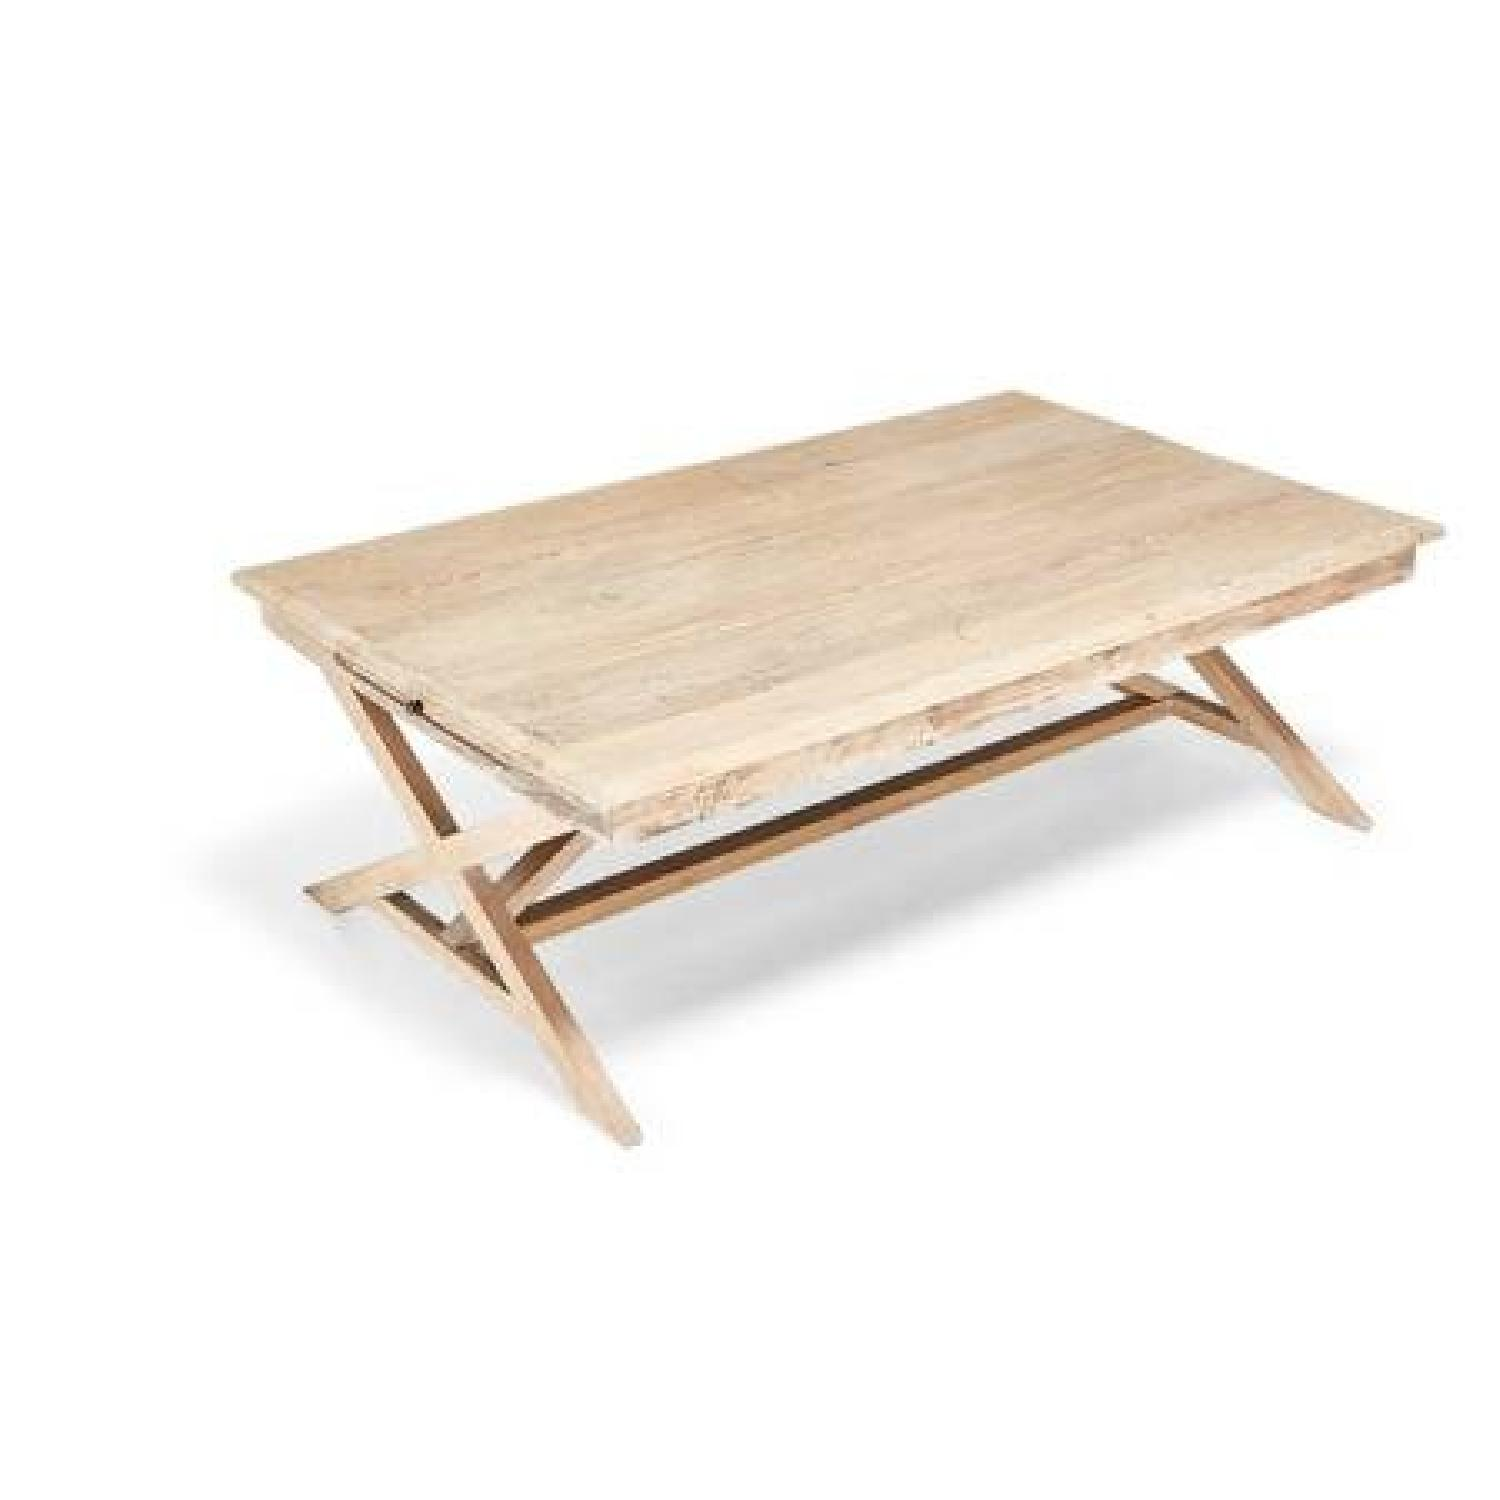 ABC Carpet & Home Handcrafted Coffee Table - image-1